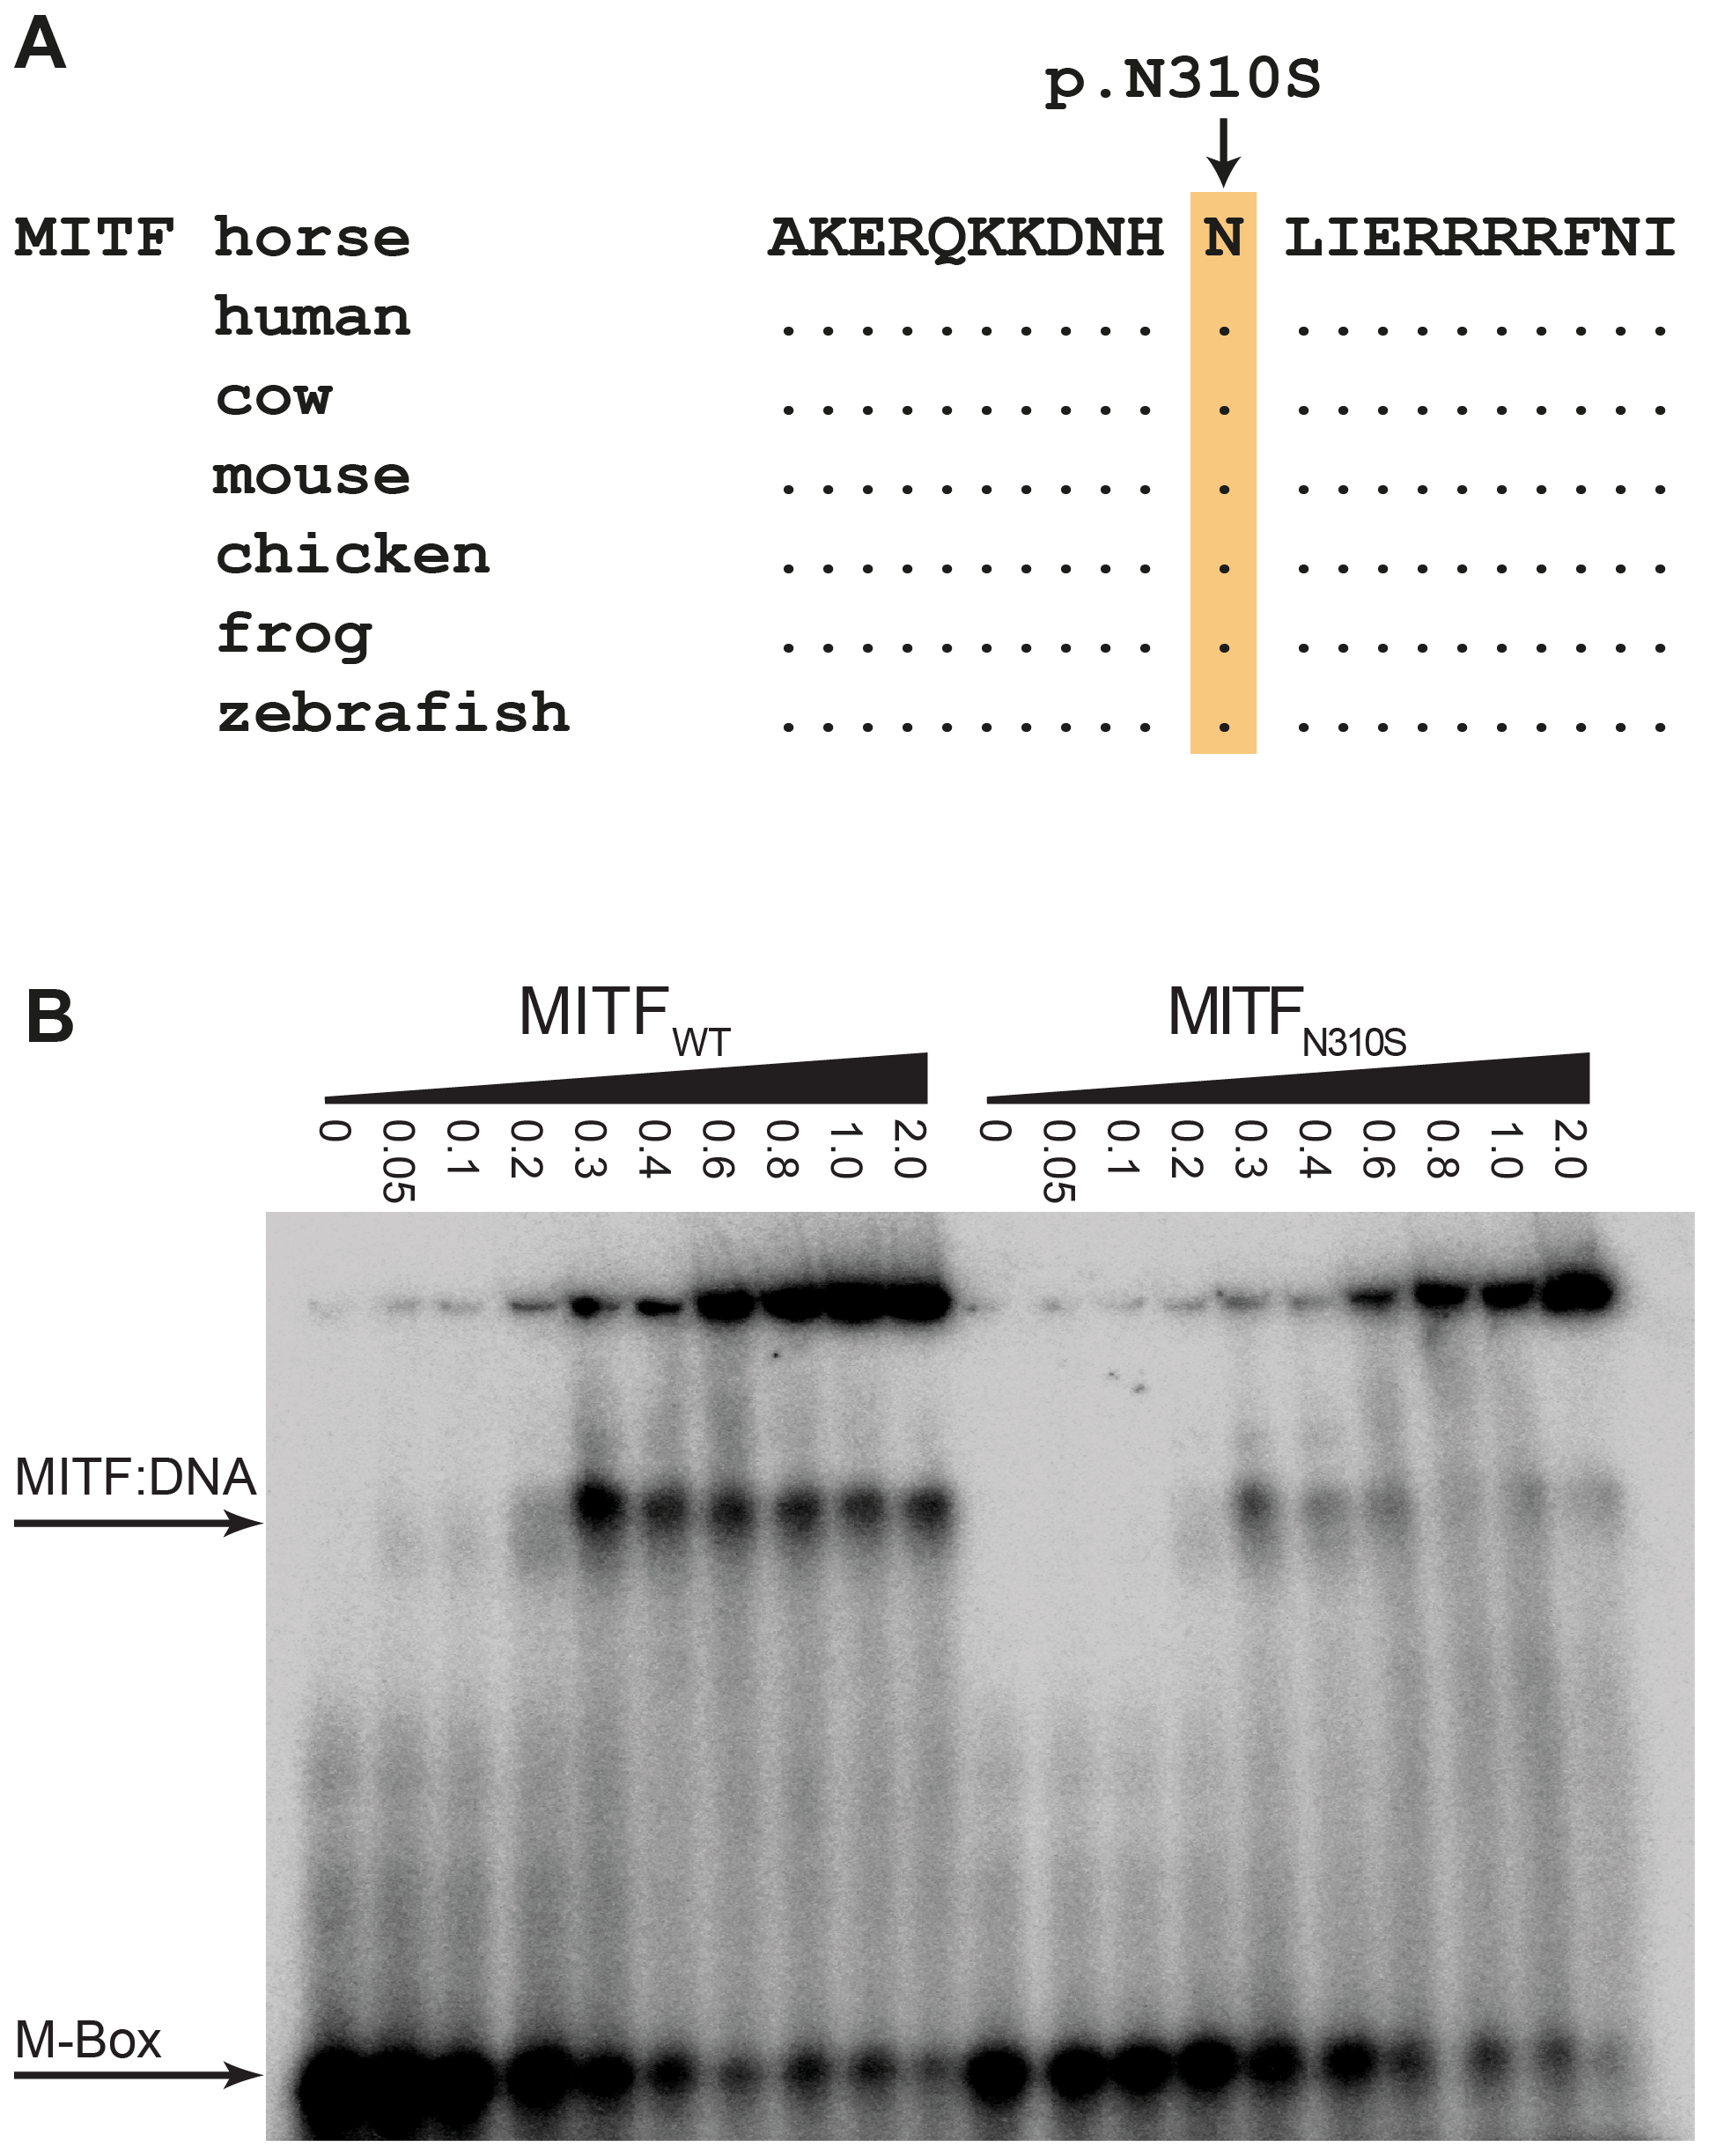 Functional validation of the MITF:p.N310S mutation.